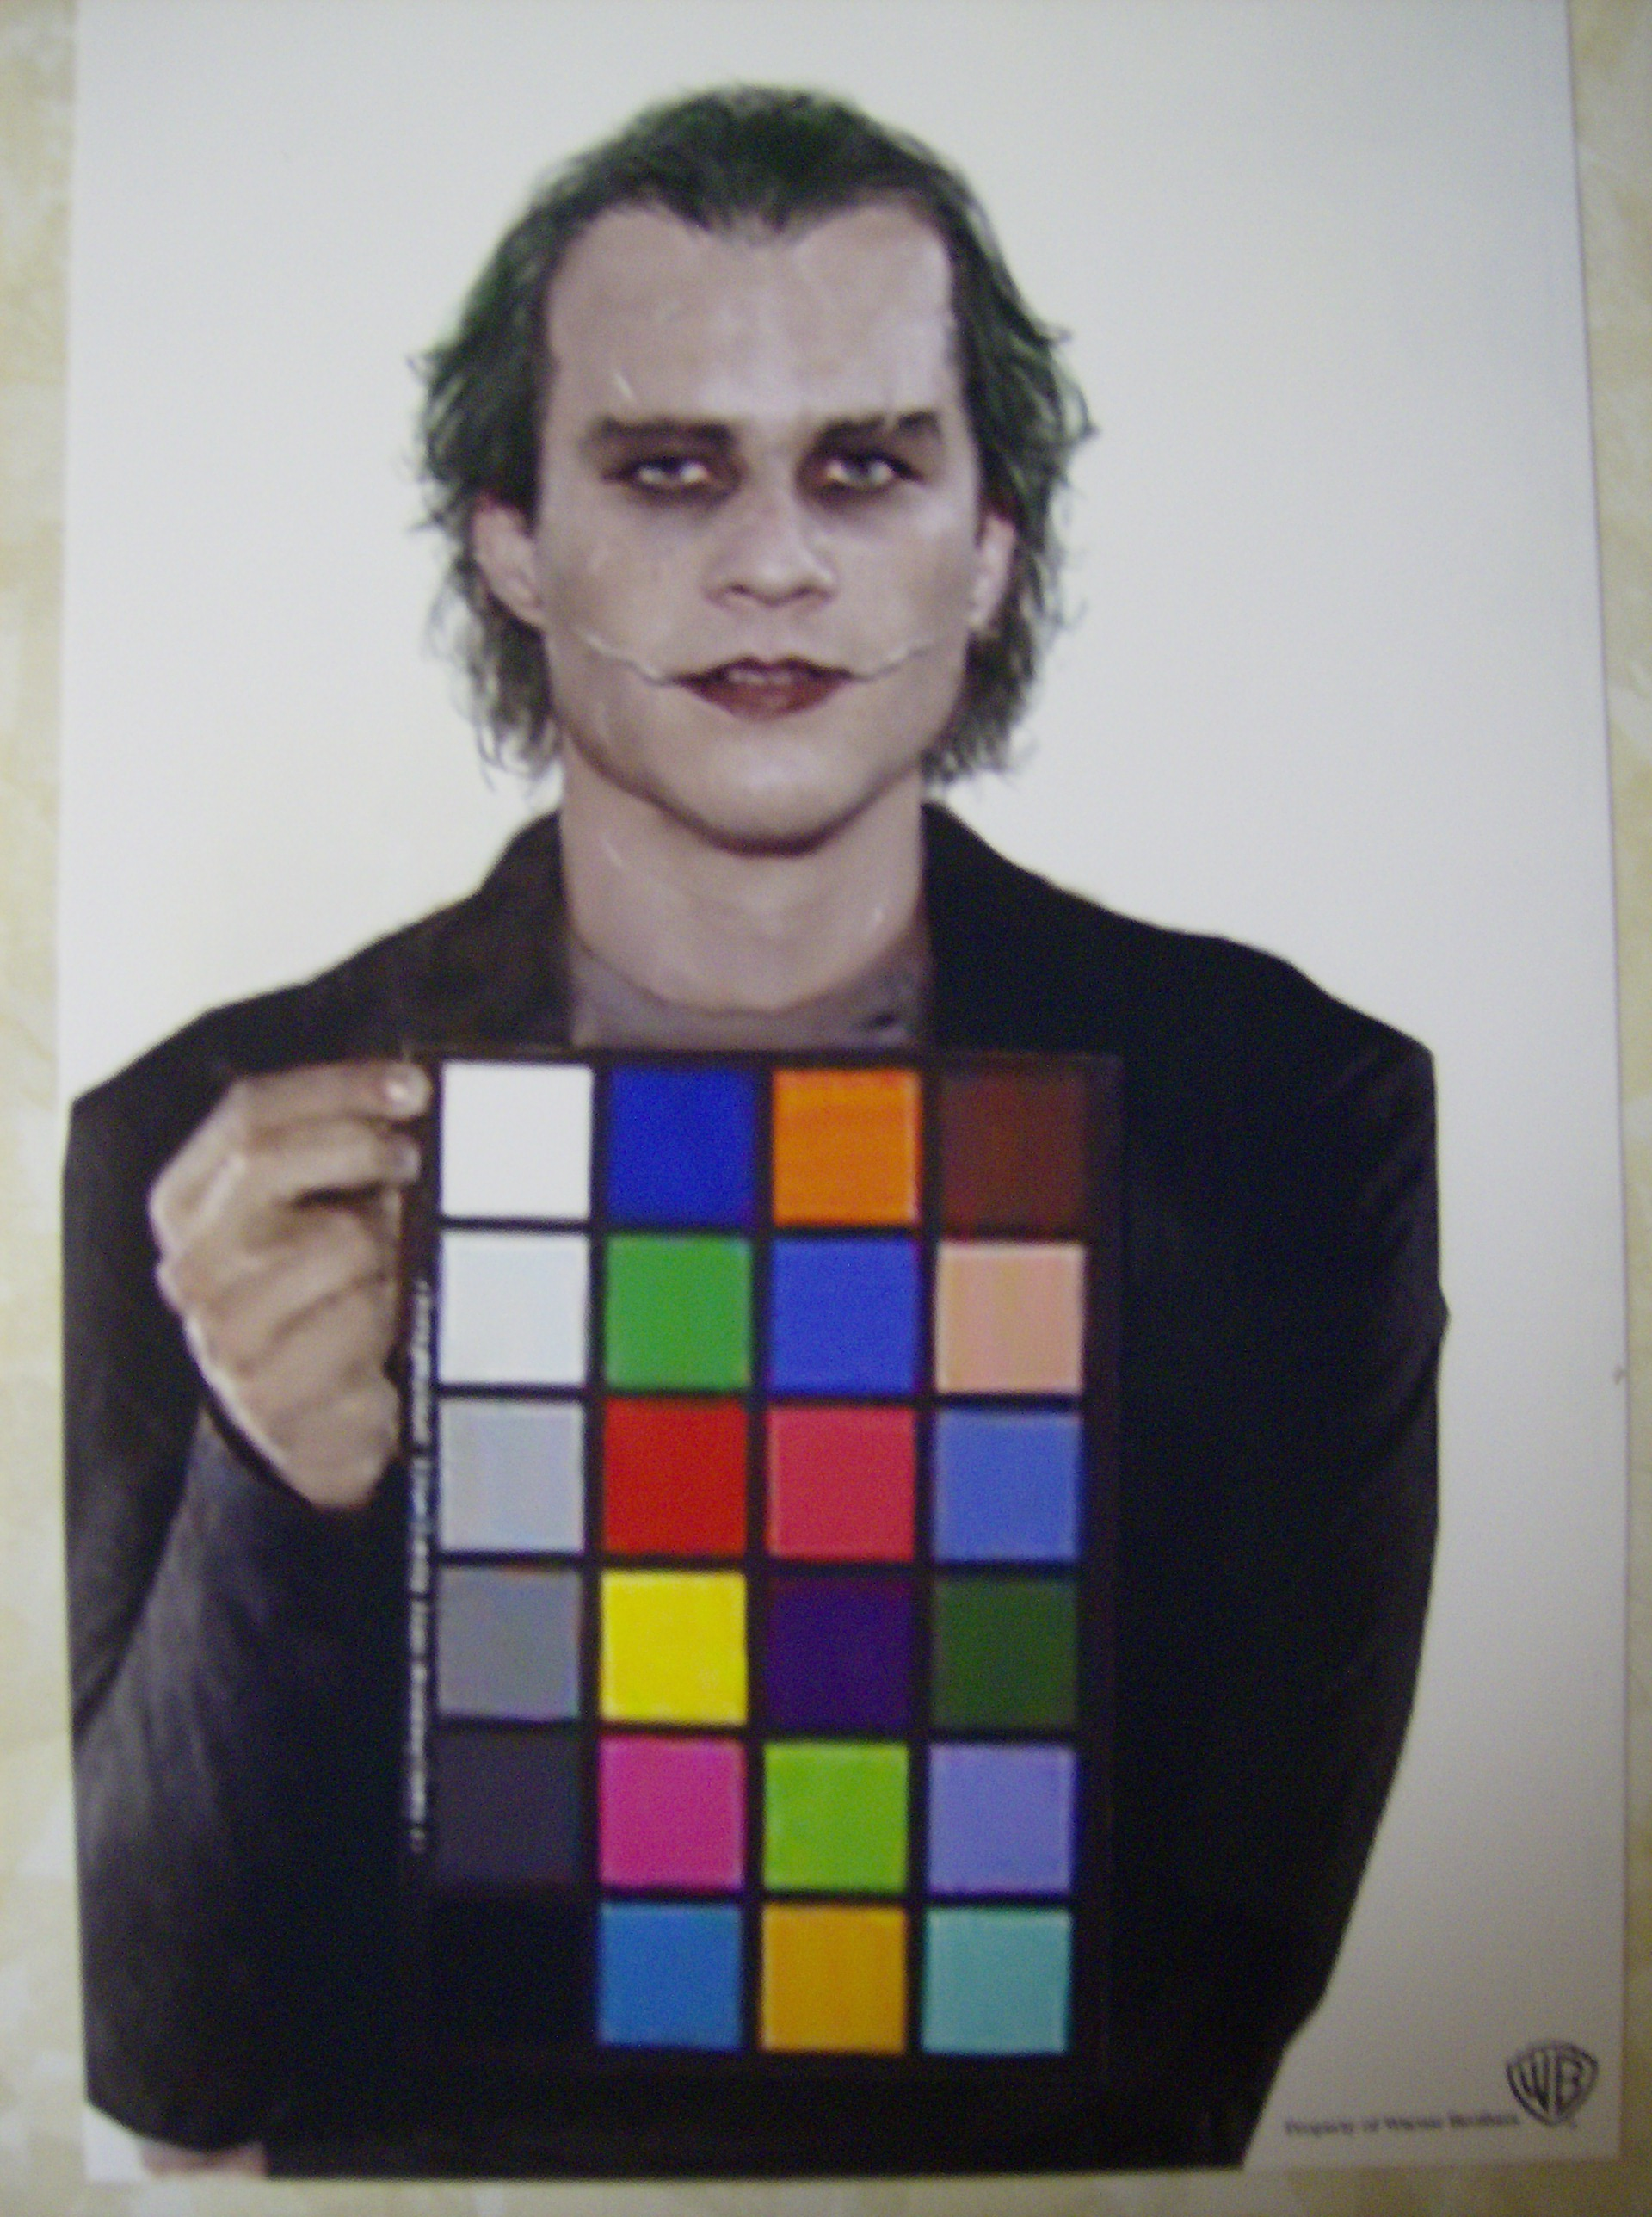 jokerledger.JPG